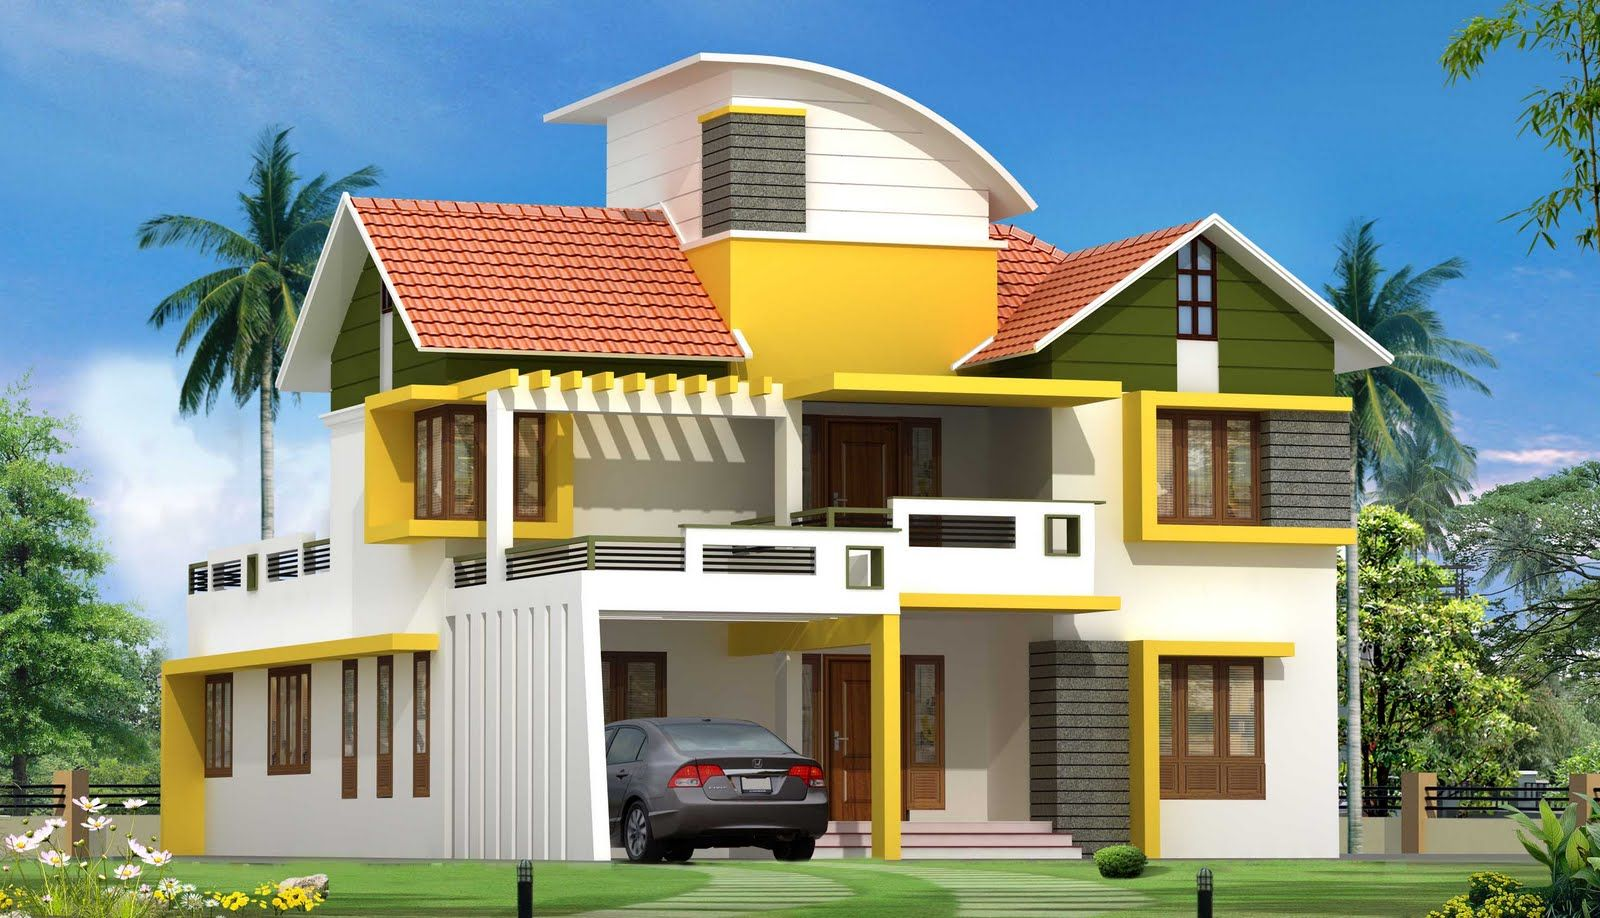 1000 images about home architecture on pinterest kerala home design and home elevation